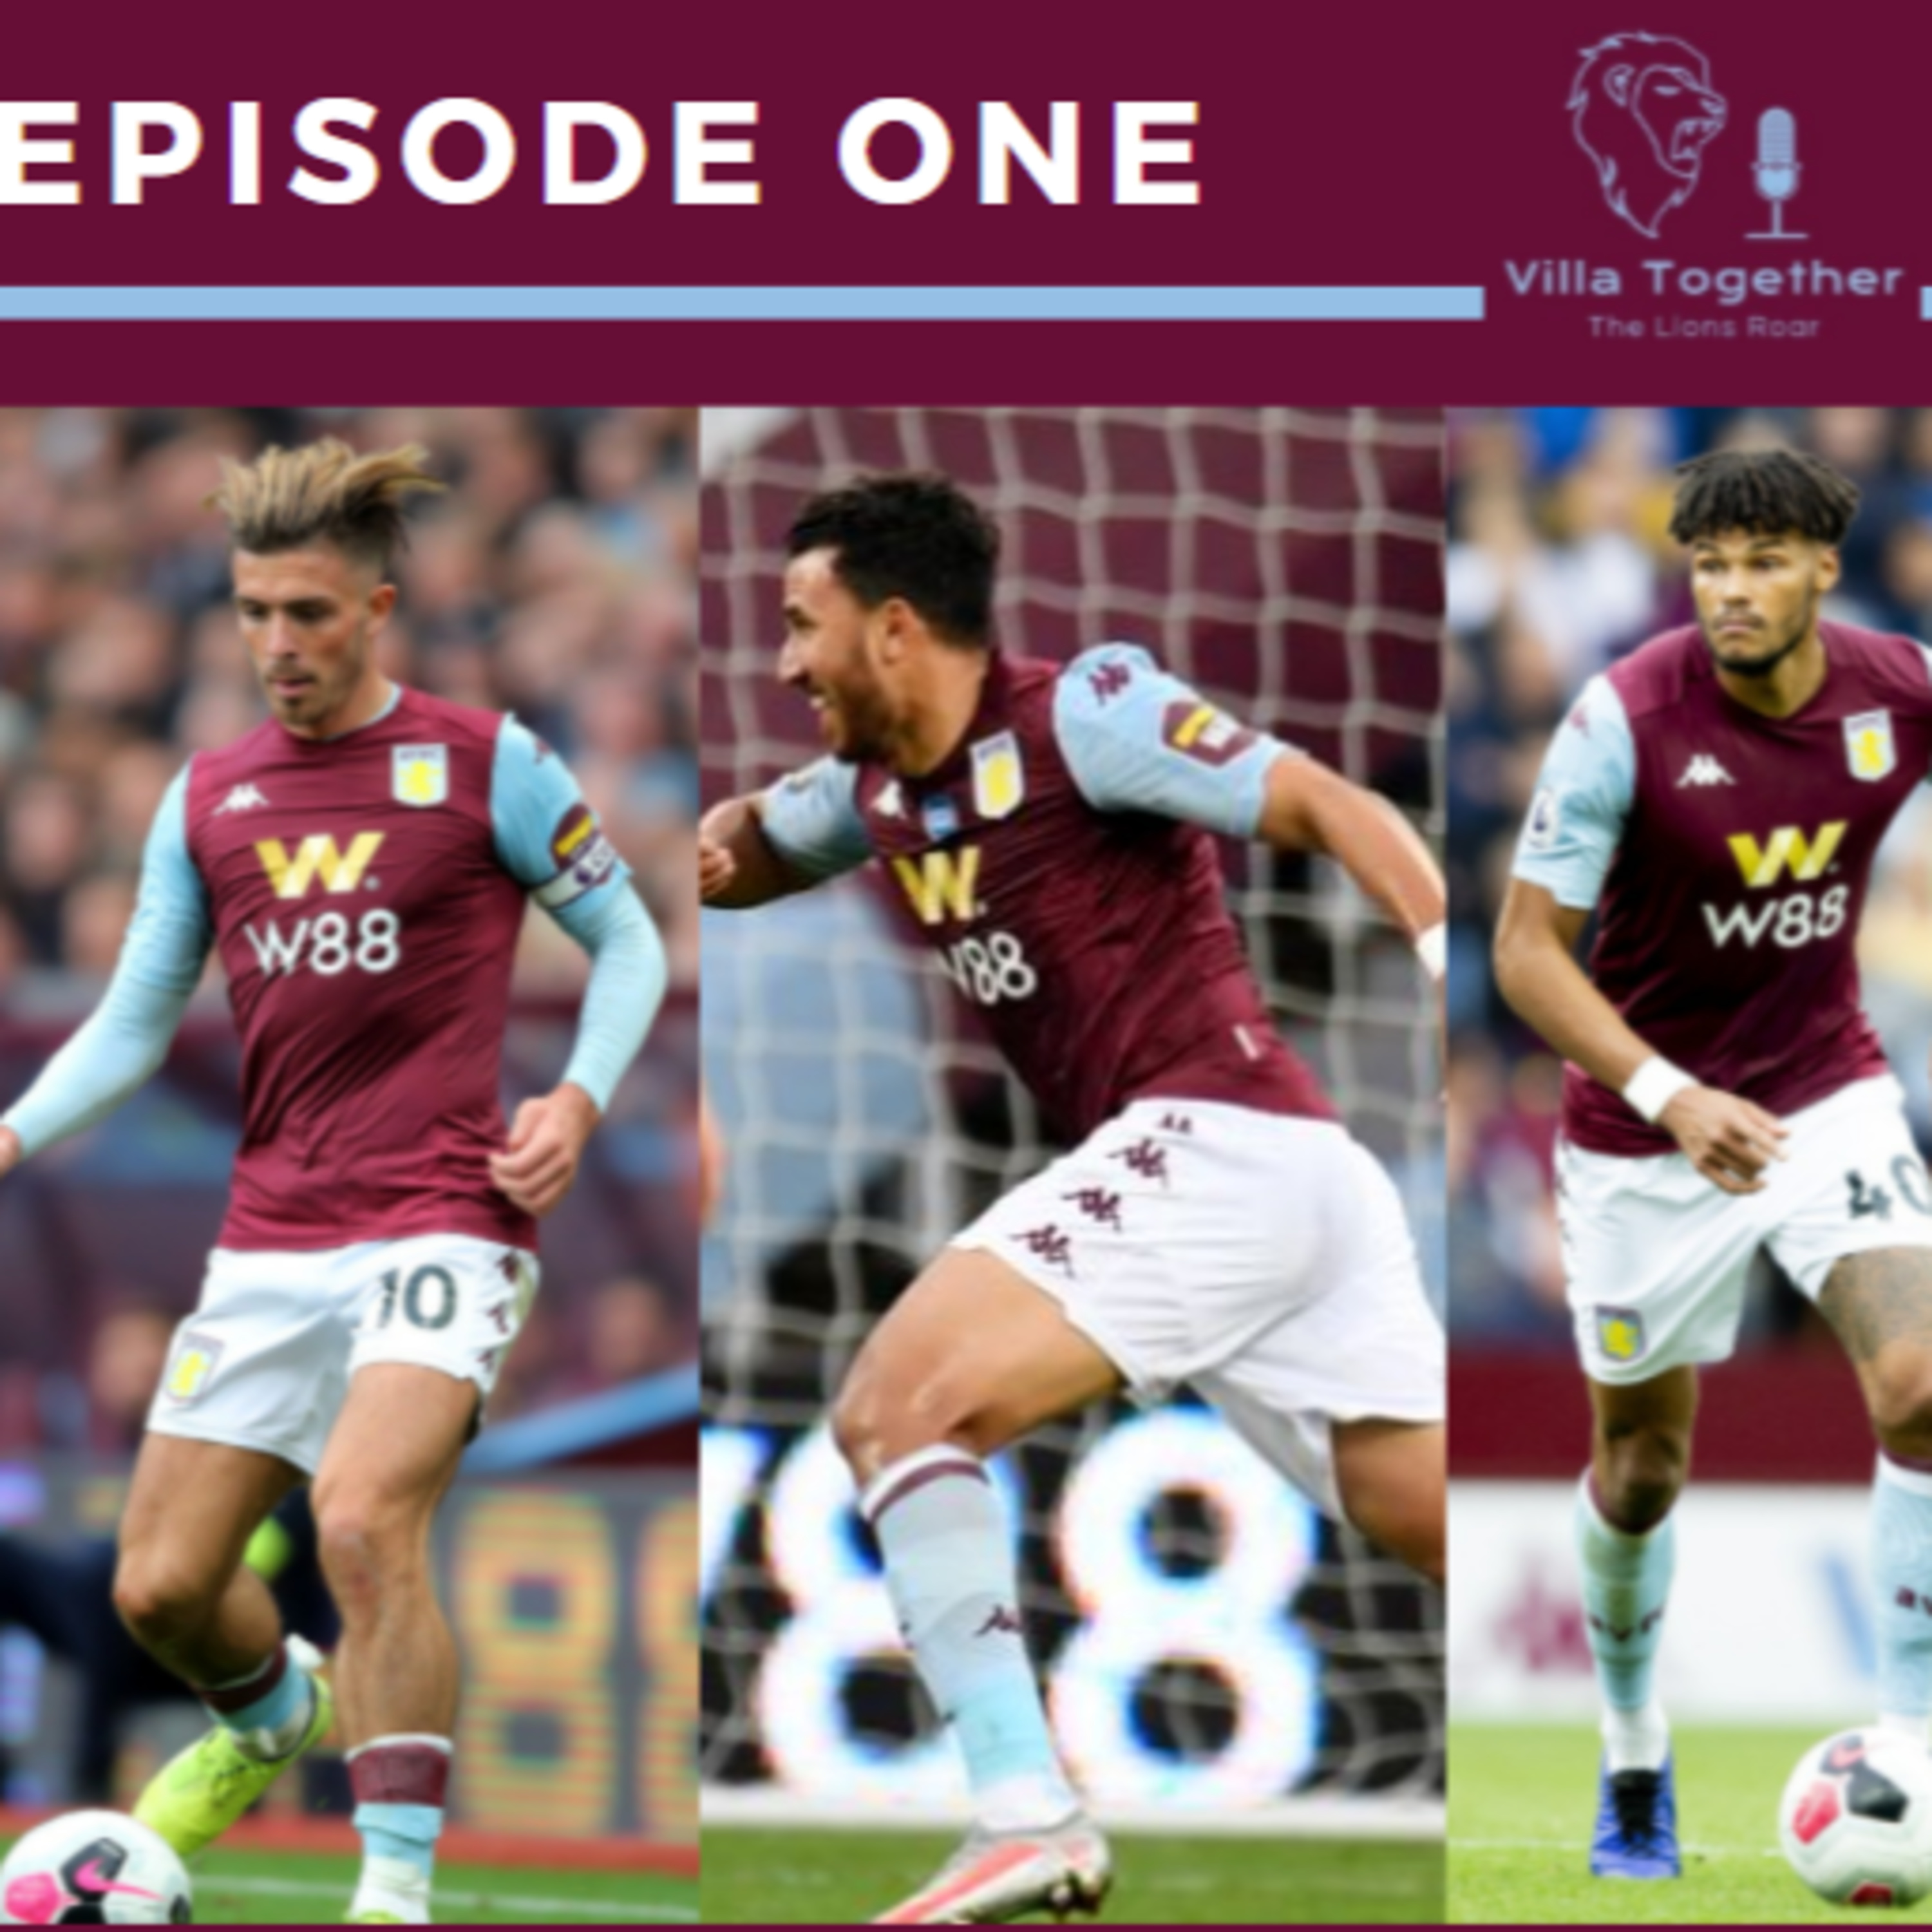 Villa Together - The Lions Roar Podcast (Aston Villa Podcast)